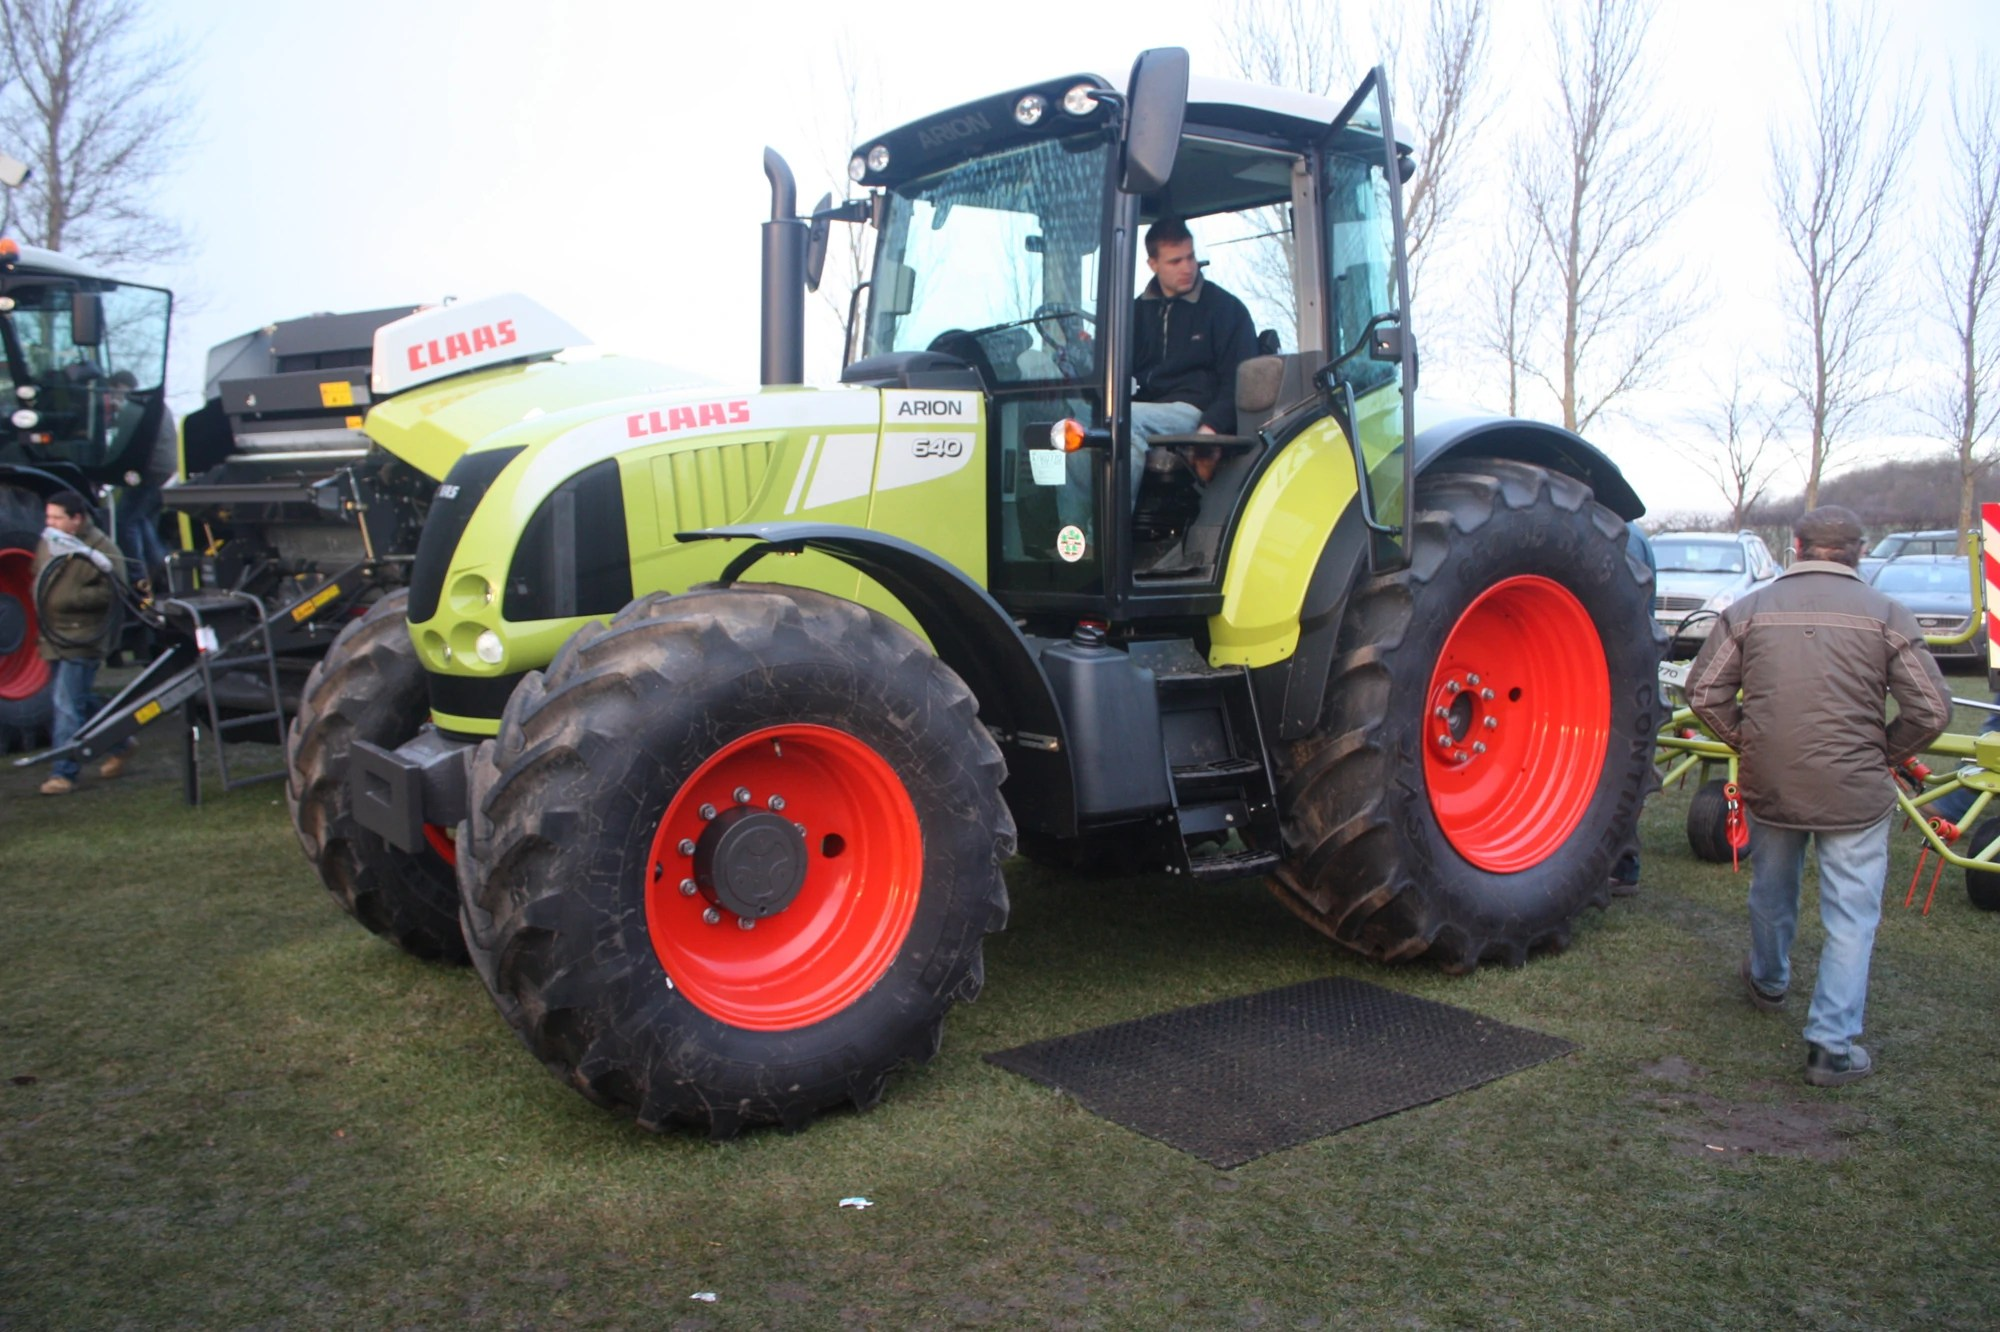 Entreprise Construction Classe 8 Claas Tractor And Construction Plant Wiki Fandom Powered